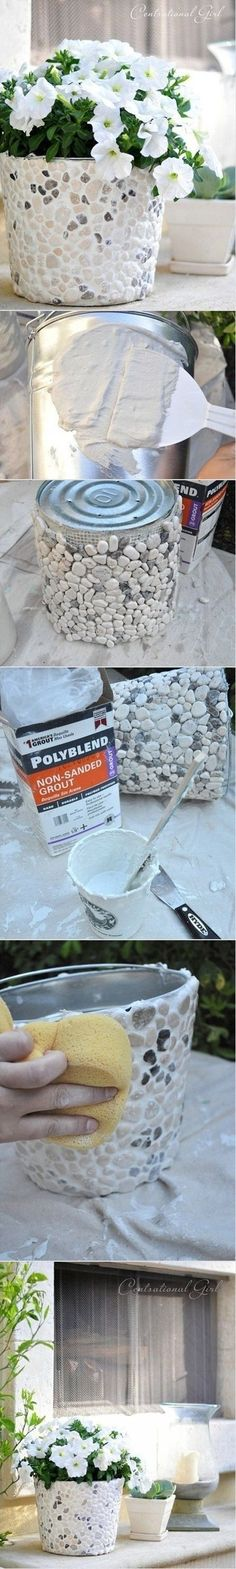 DIY Rock Covered Bucket An Easy Project You'll Love